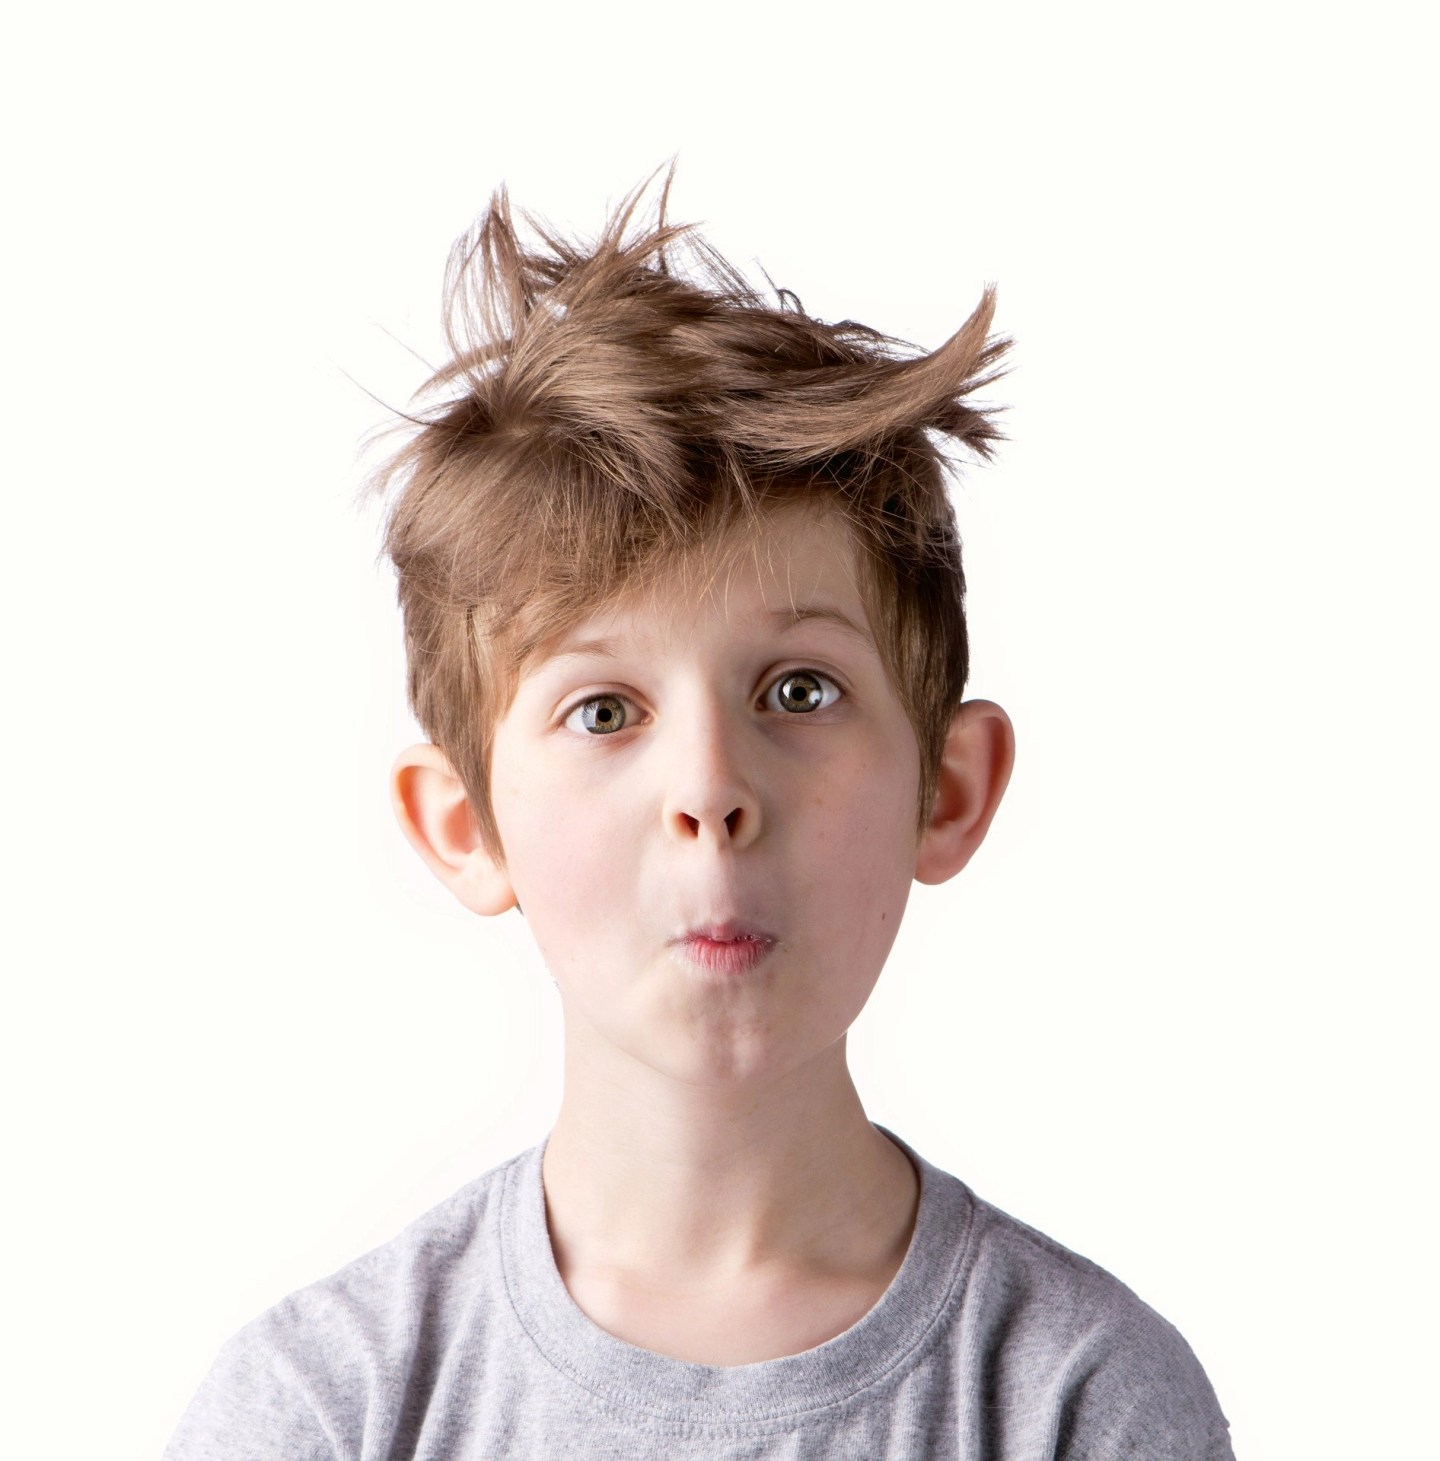 Young boy head lice treatment